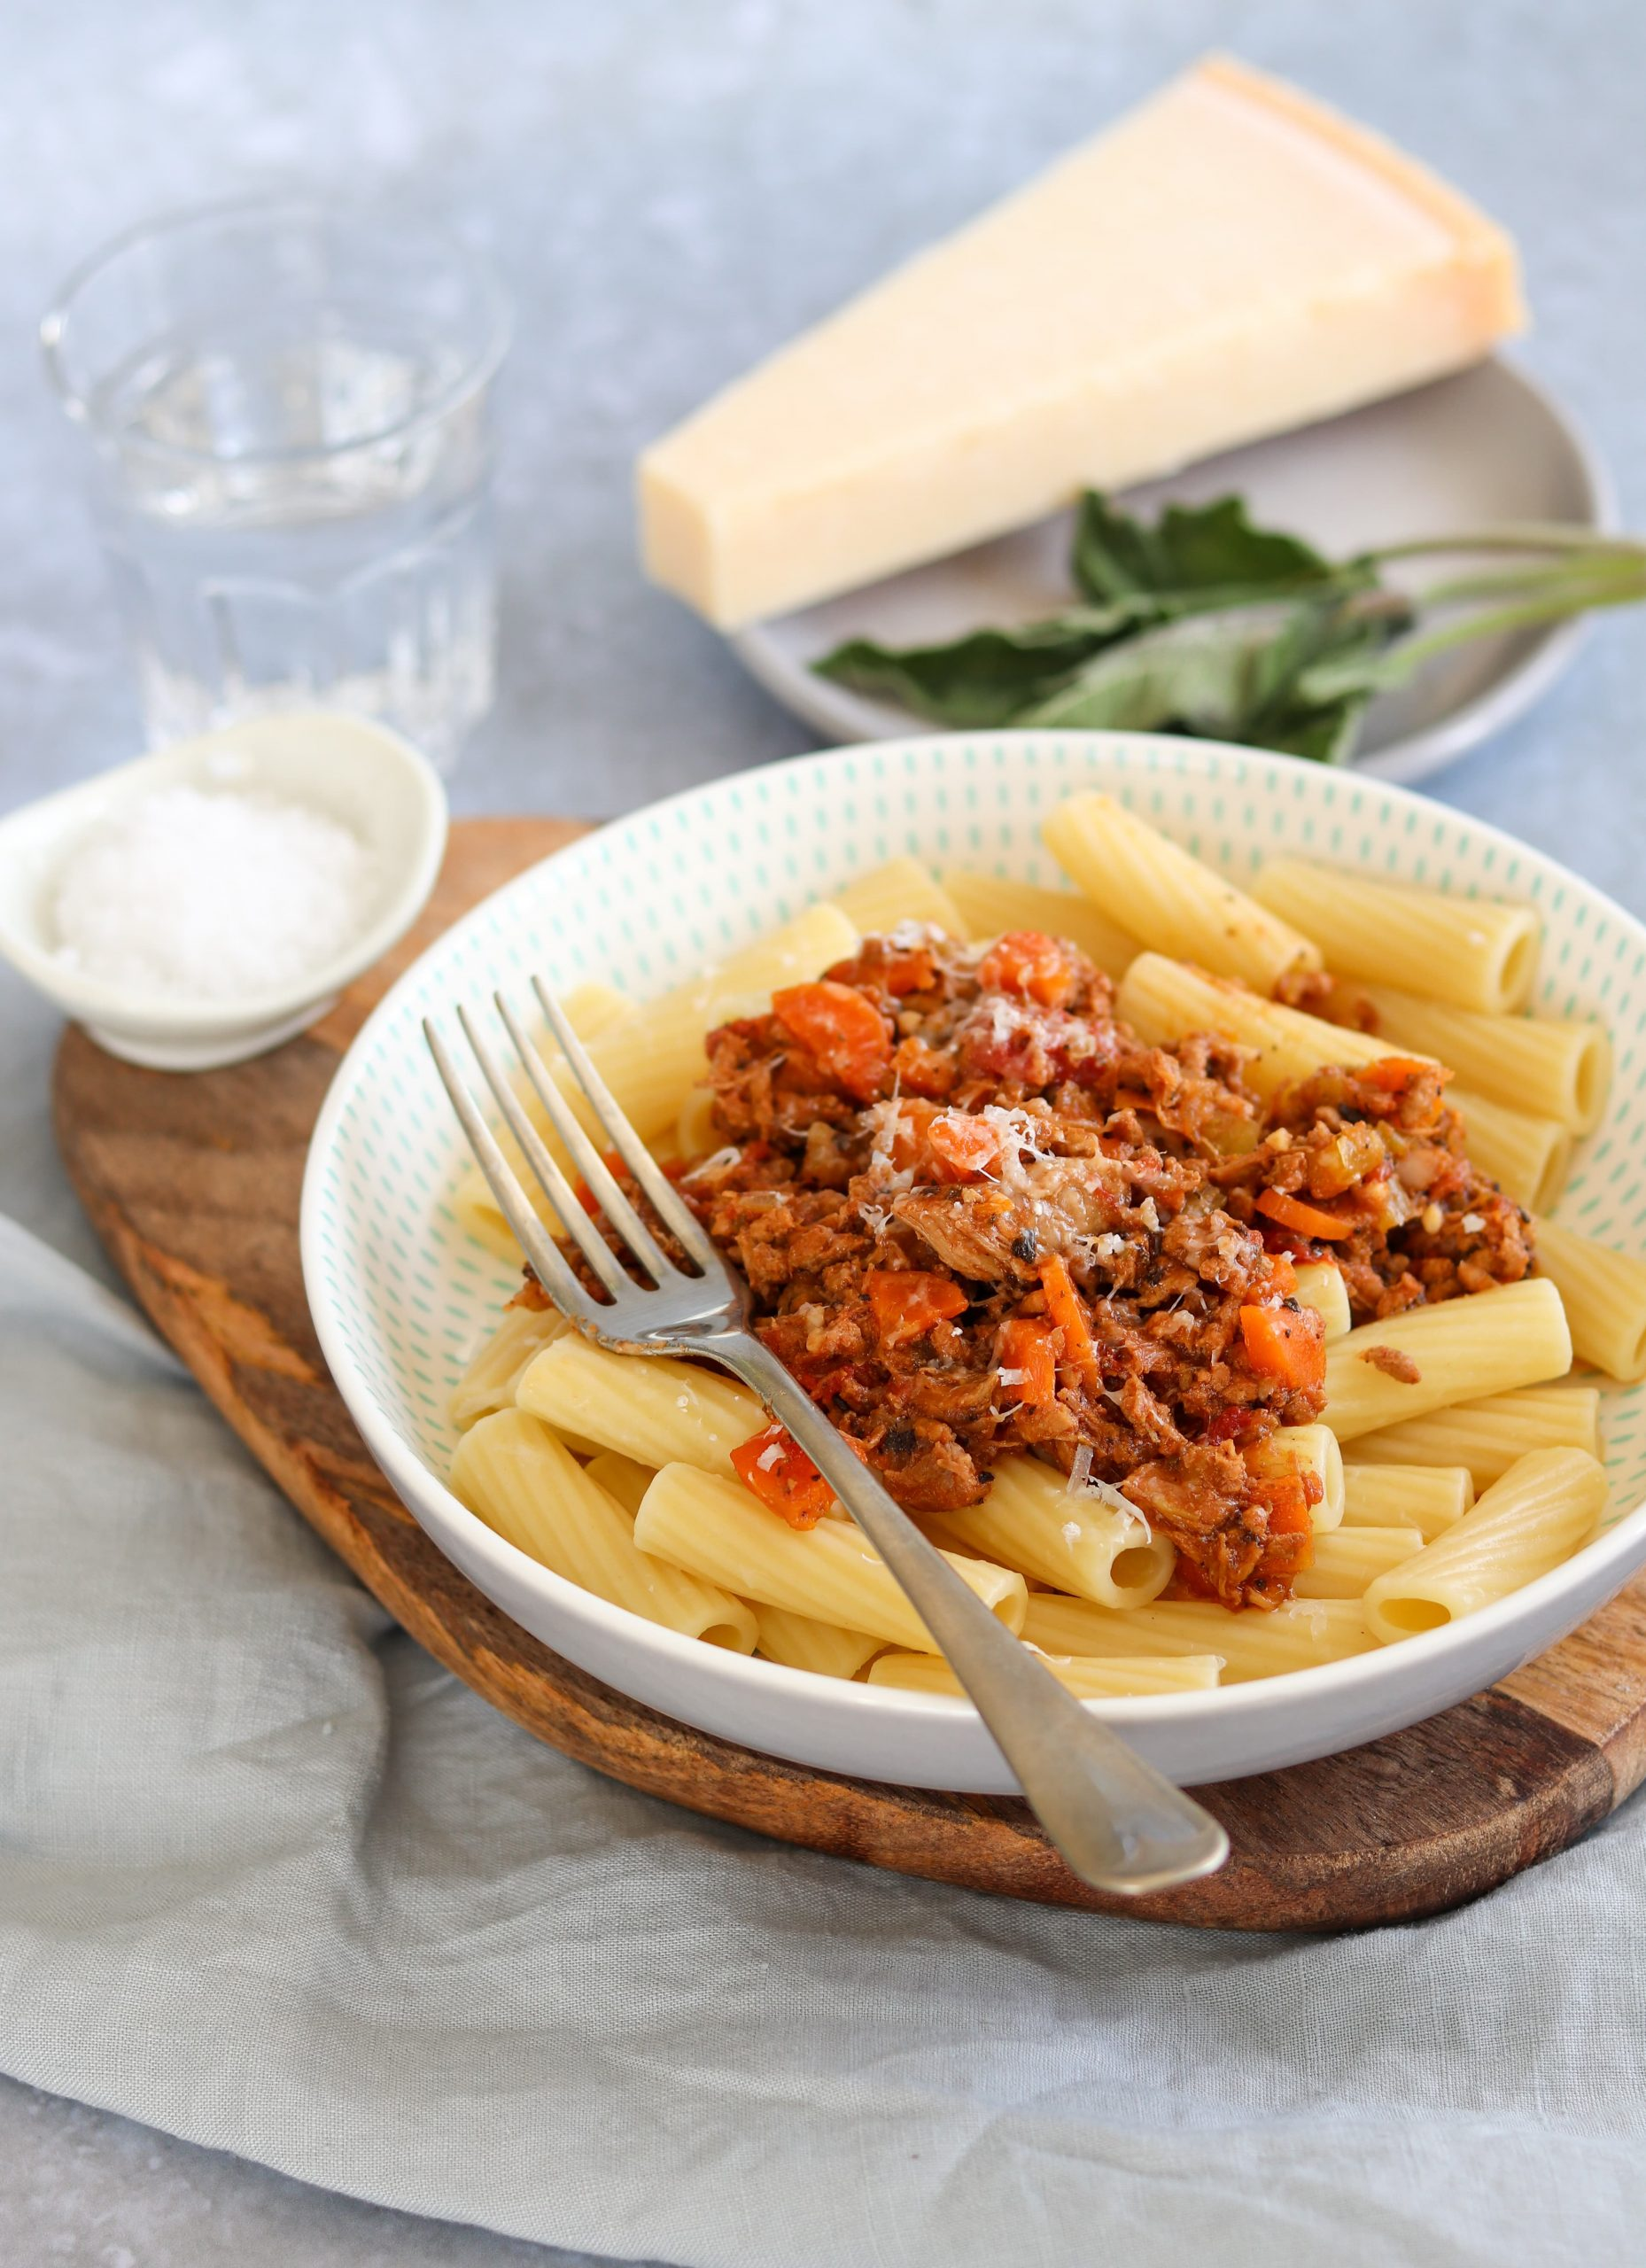 Slow Cooker Pork & Sage Ragu